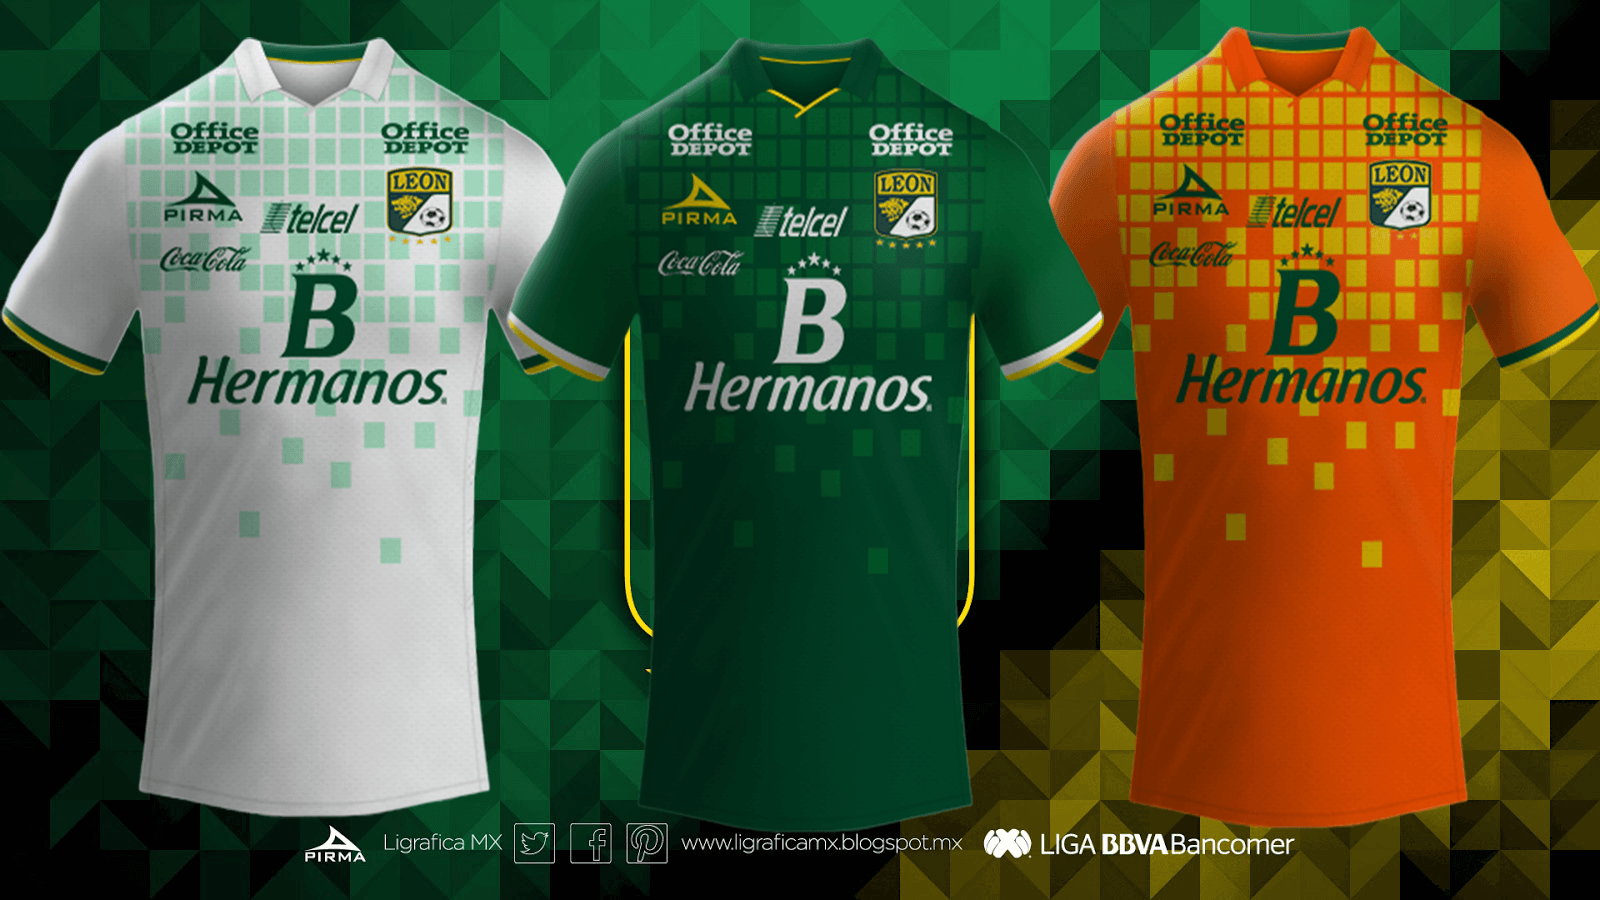 Club Leon Pirma Kits